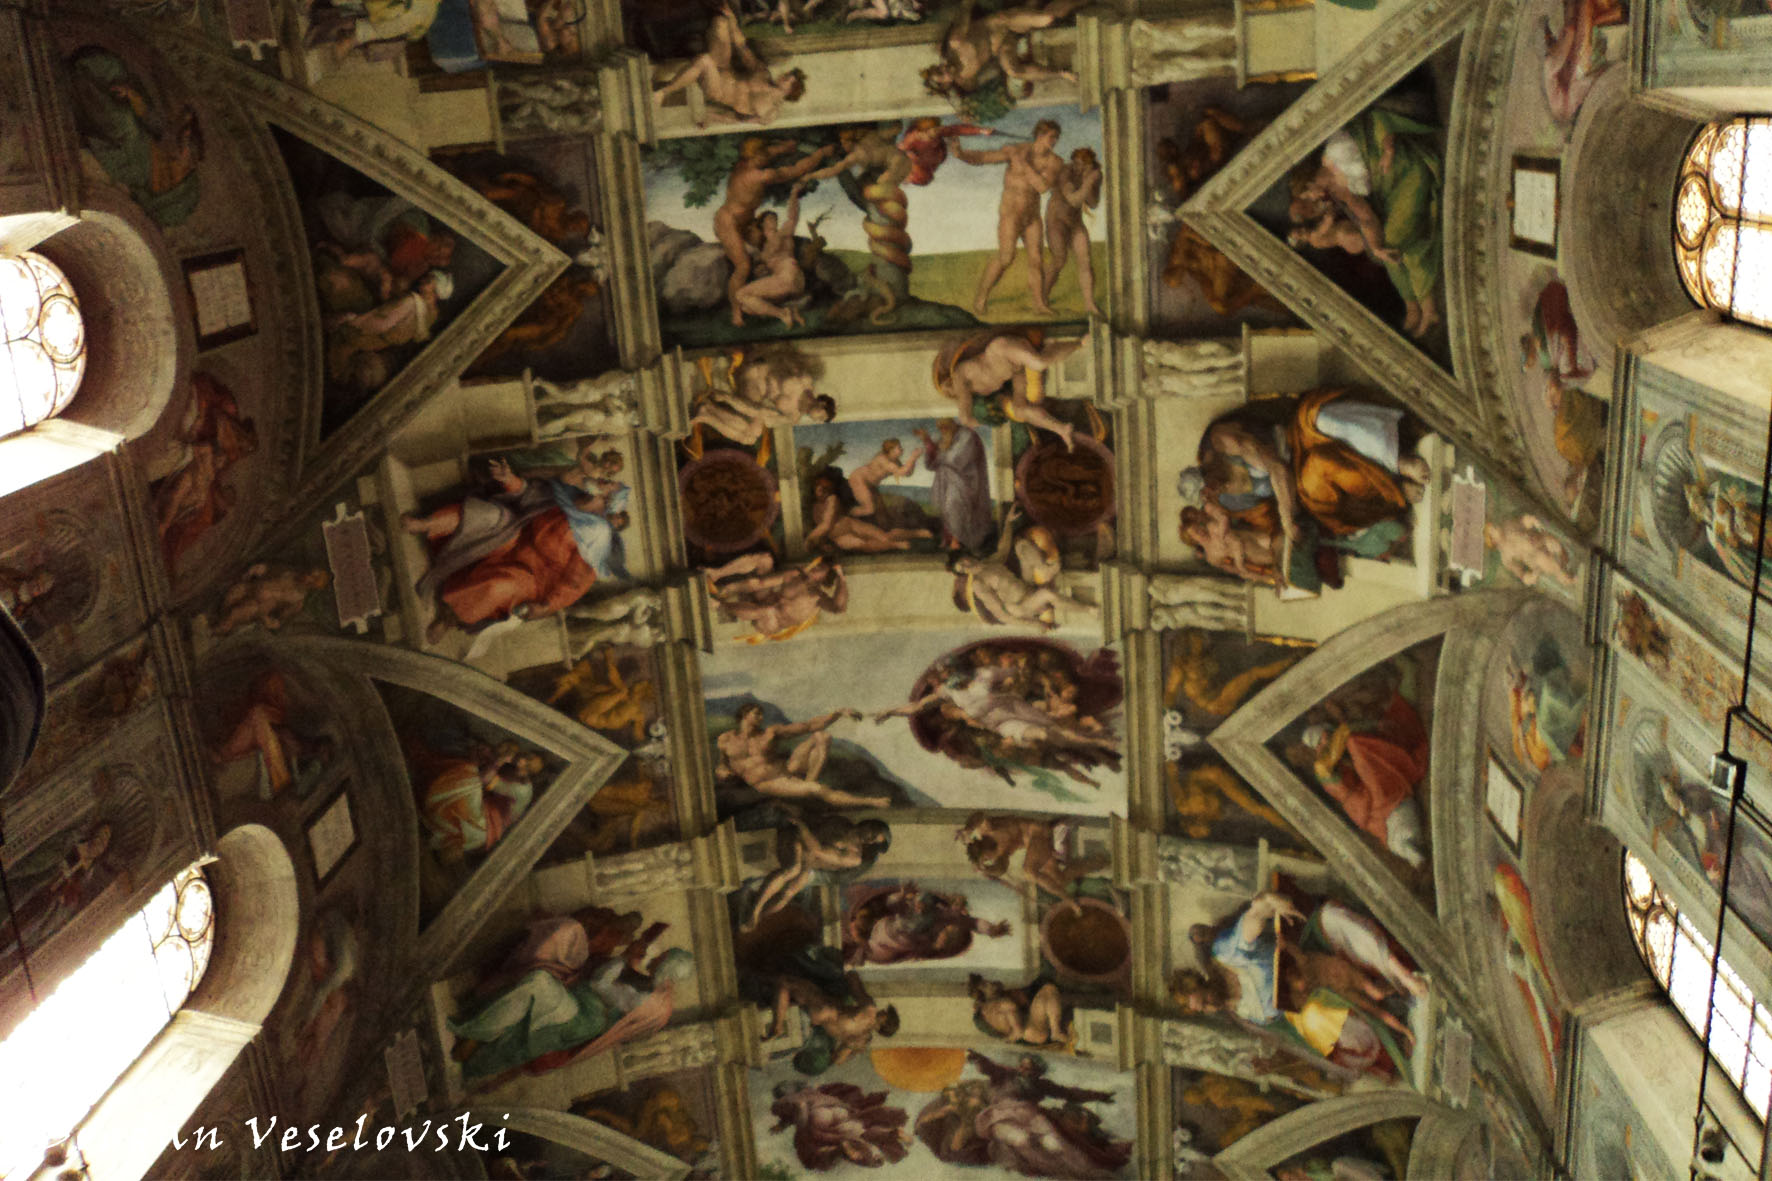 sistine chapel ceiling essay Title: length color rating : sistine chapel ceiling and the last judgment essay - in this research paper i will be looking at two different artworks by the same artist the two i will be looking at are the sistine chapel ceiling (1508-1512) and the last judgment (1534.